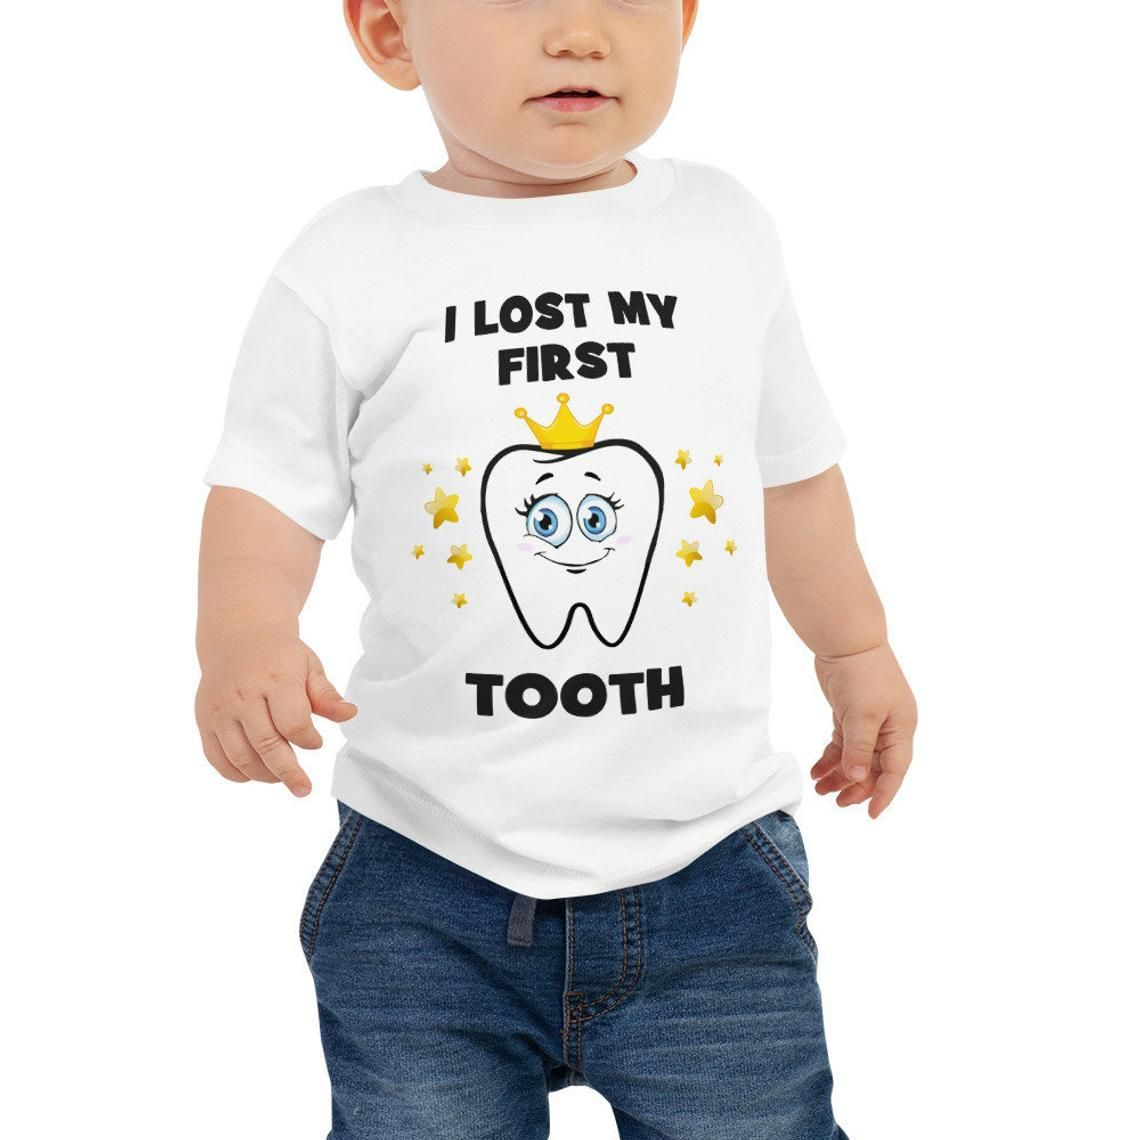 Awkward Styles I Lost My First Tooth Raglan for Toddler Cute Lost Tooth Baseball Shirt